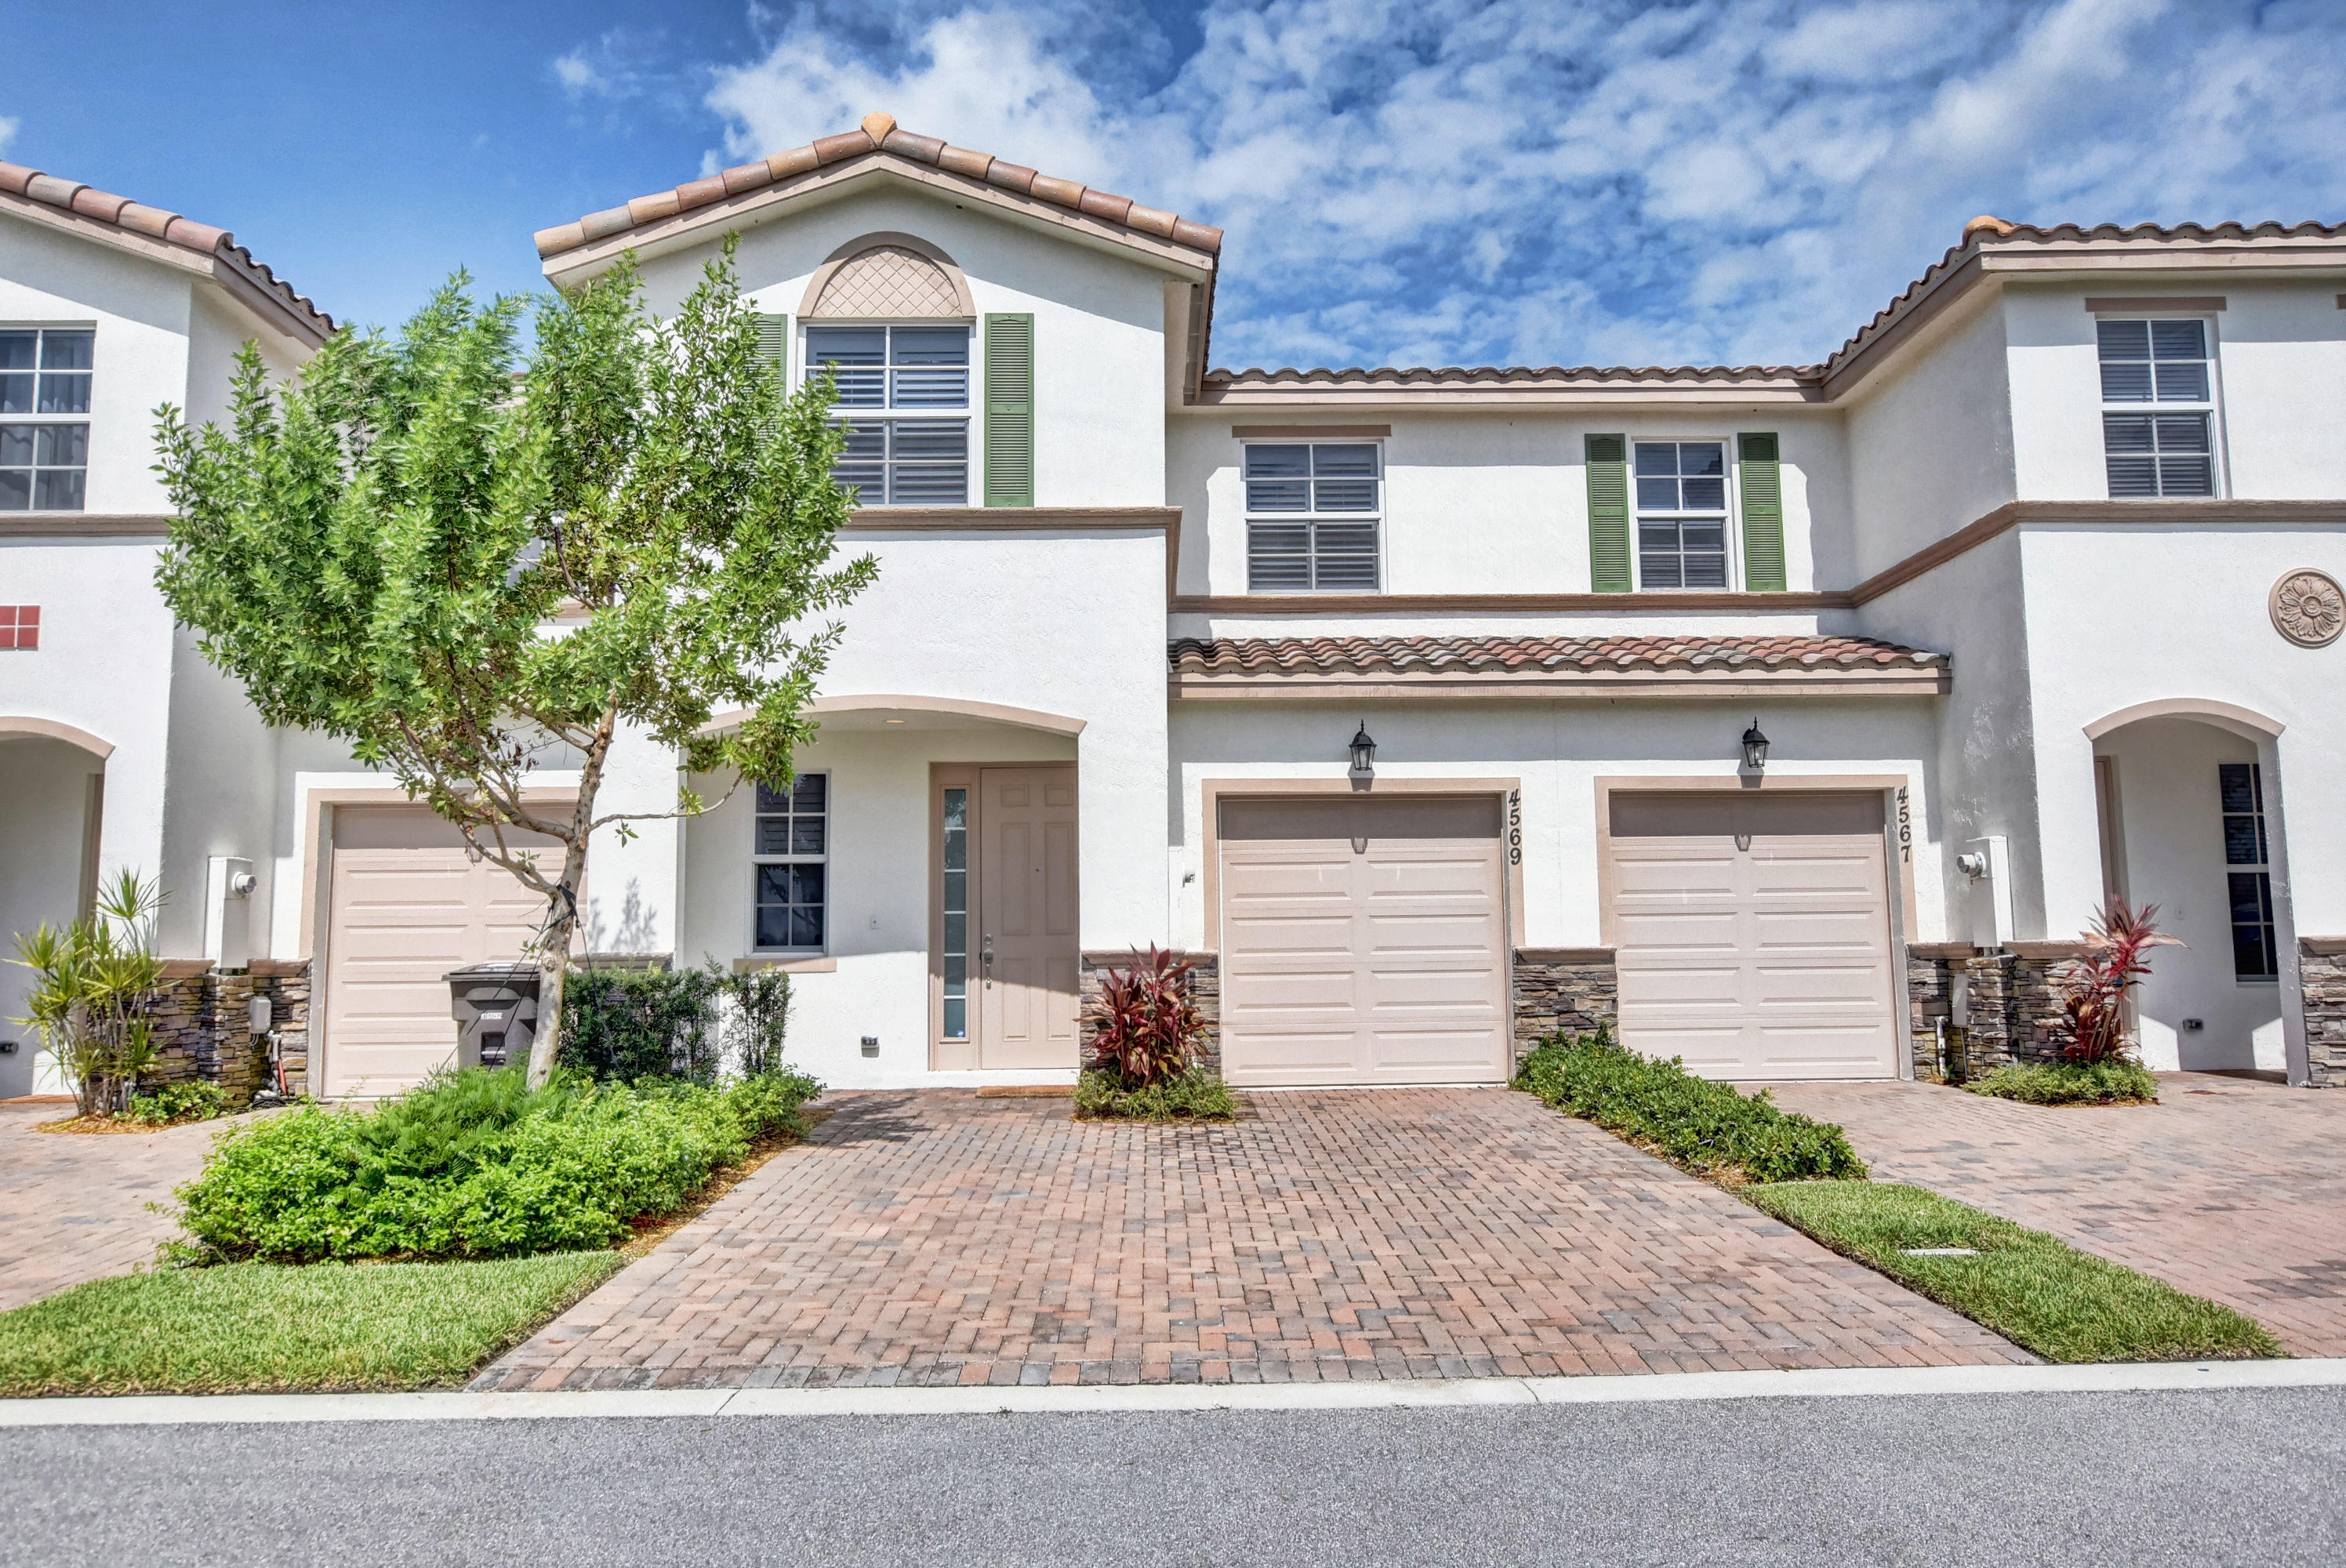 4569 Tara Cove Way - West Palm Beach, Florida